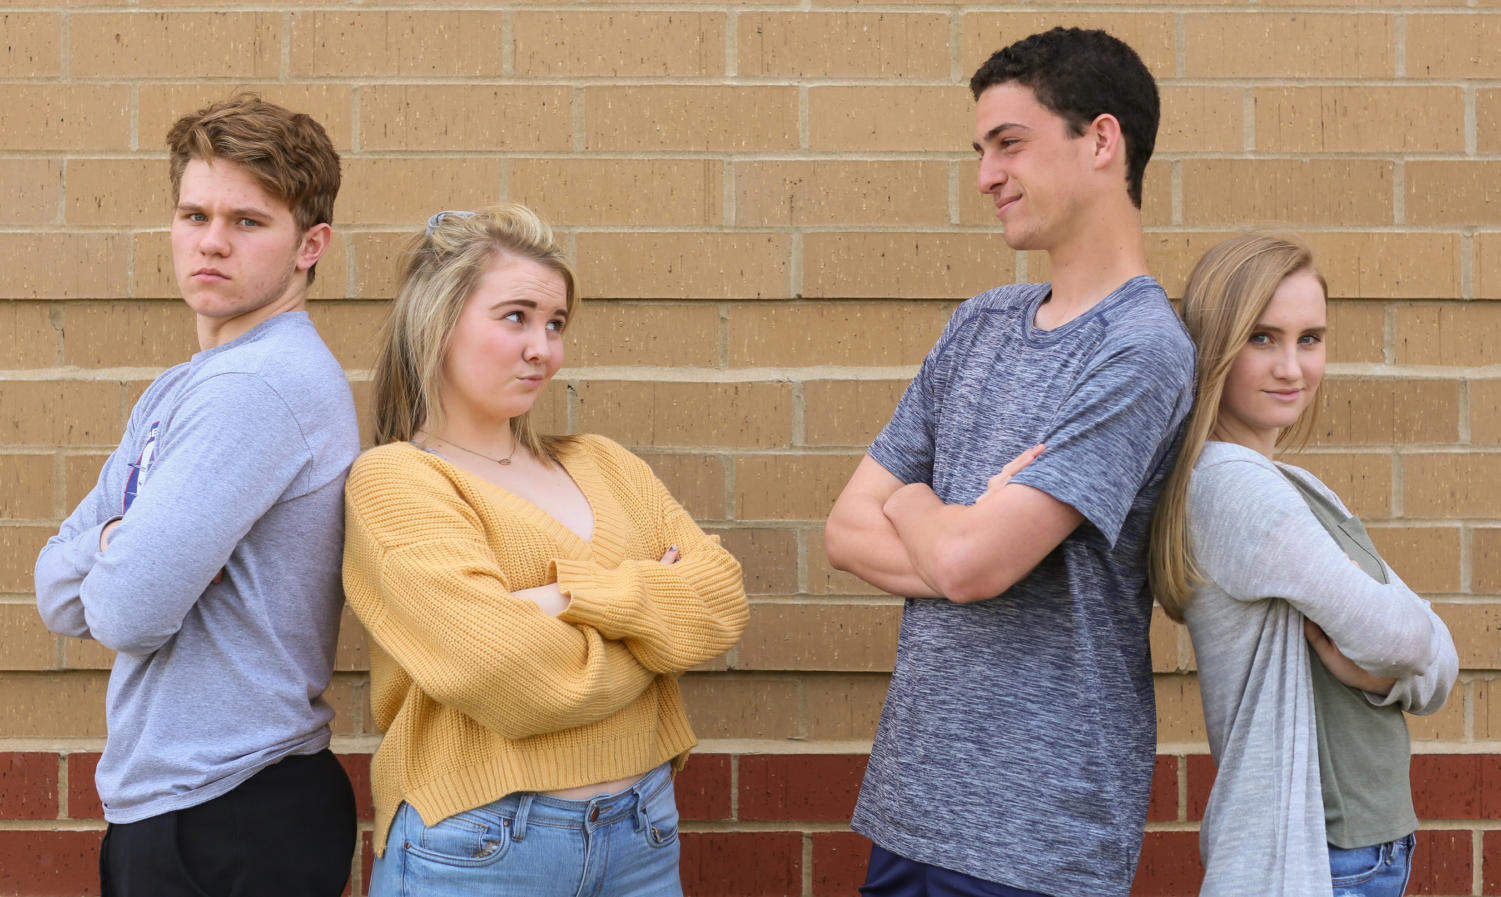 (left to right) Juniors Hunter Perkins and Marlee Doniff face off against Evan Sacks and Kara Collier in StuCo's presidential election. Doniff and Sacks are running for president, while Perkins and Collier are running for Vice President.